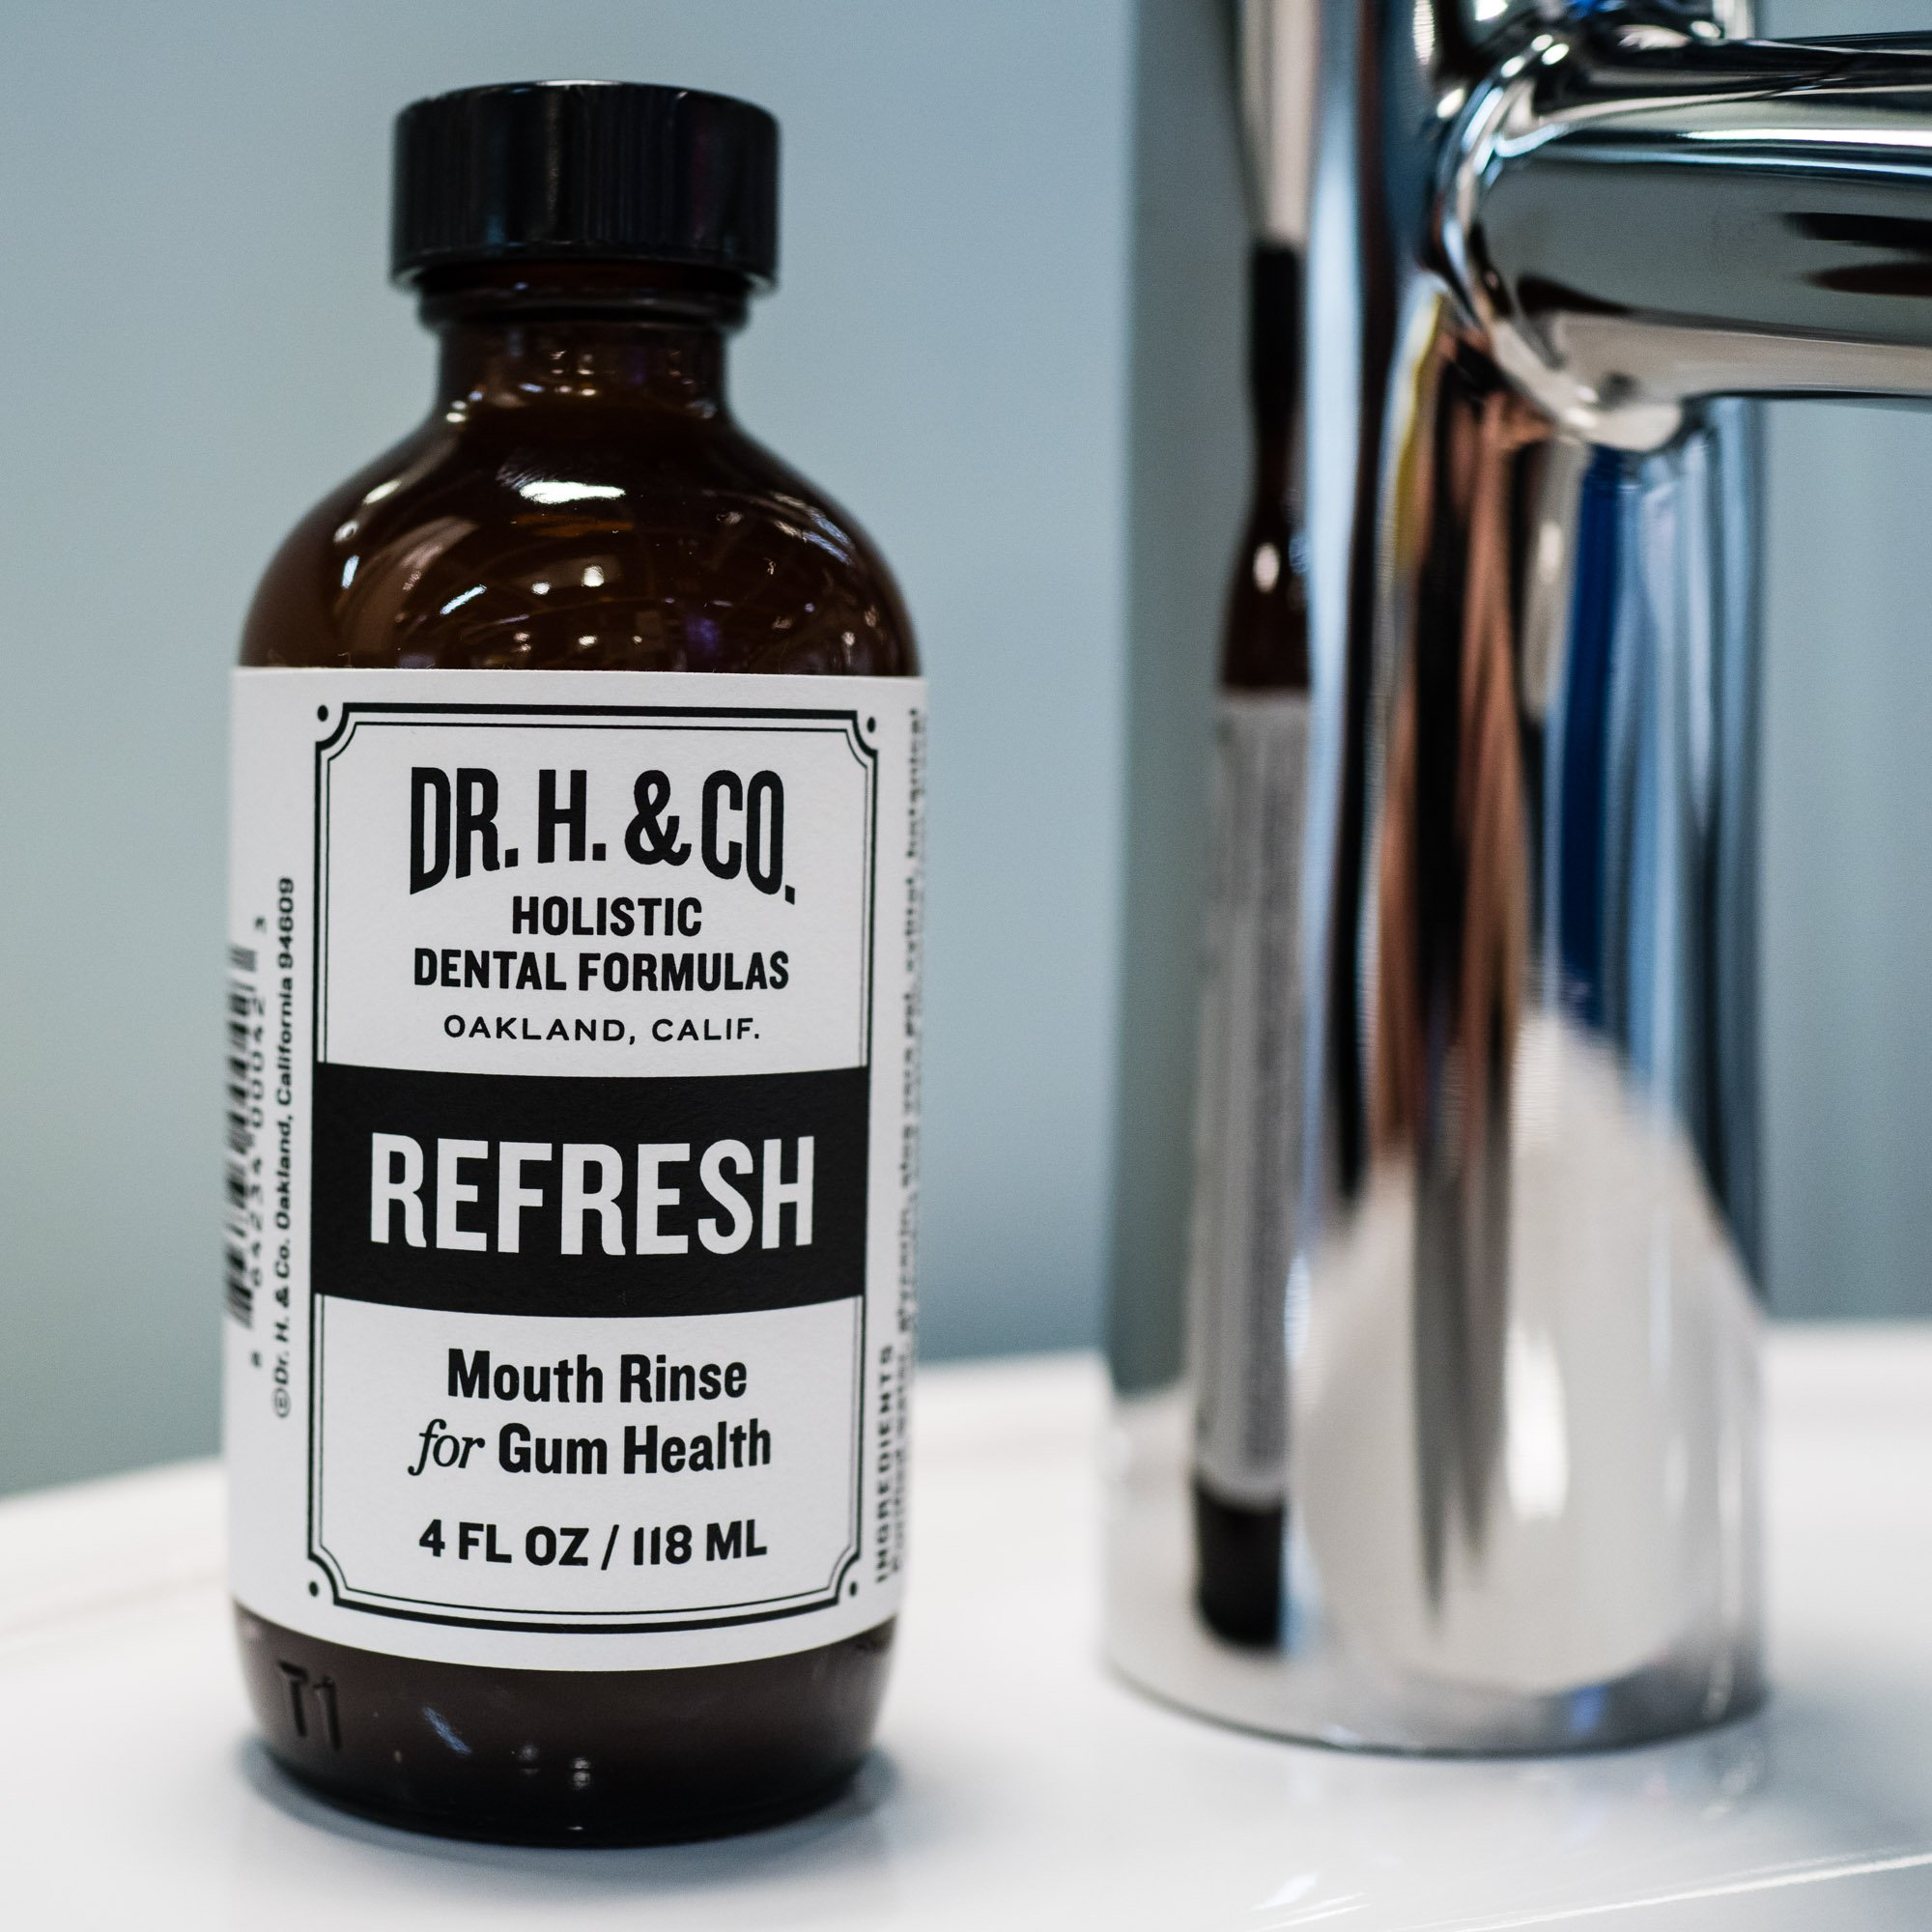 Dr. H. & Co. Dentist Formulated Refresh Mouthwash Ð All Natural Herbal and Holistic Mouth Rinse for Healthy Gums and Teeth (4 oz Glass Bottle) by Dr. H. & Co. (Image #2)